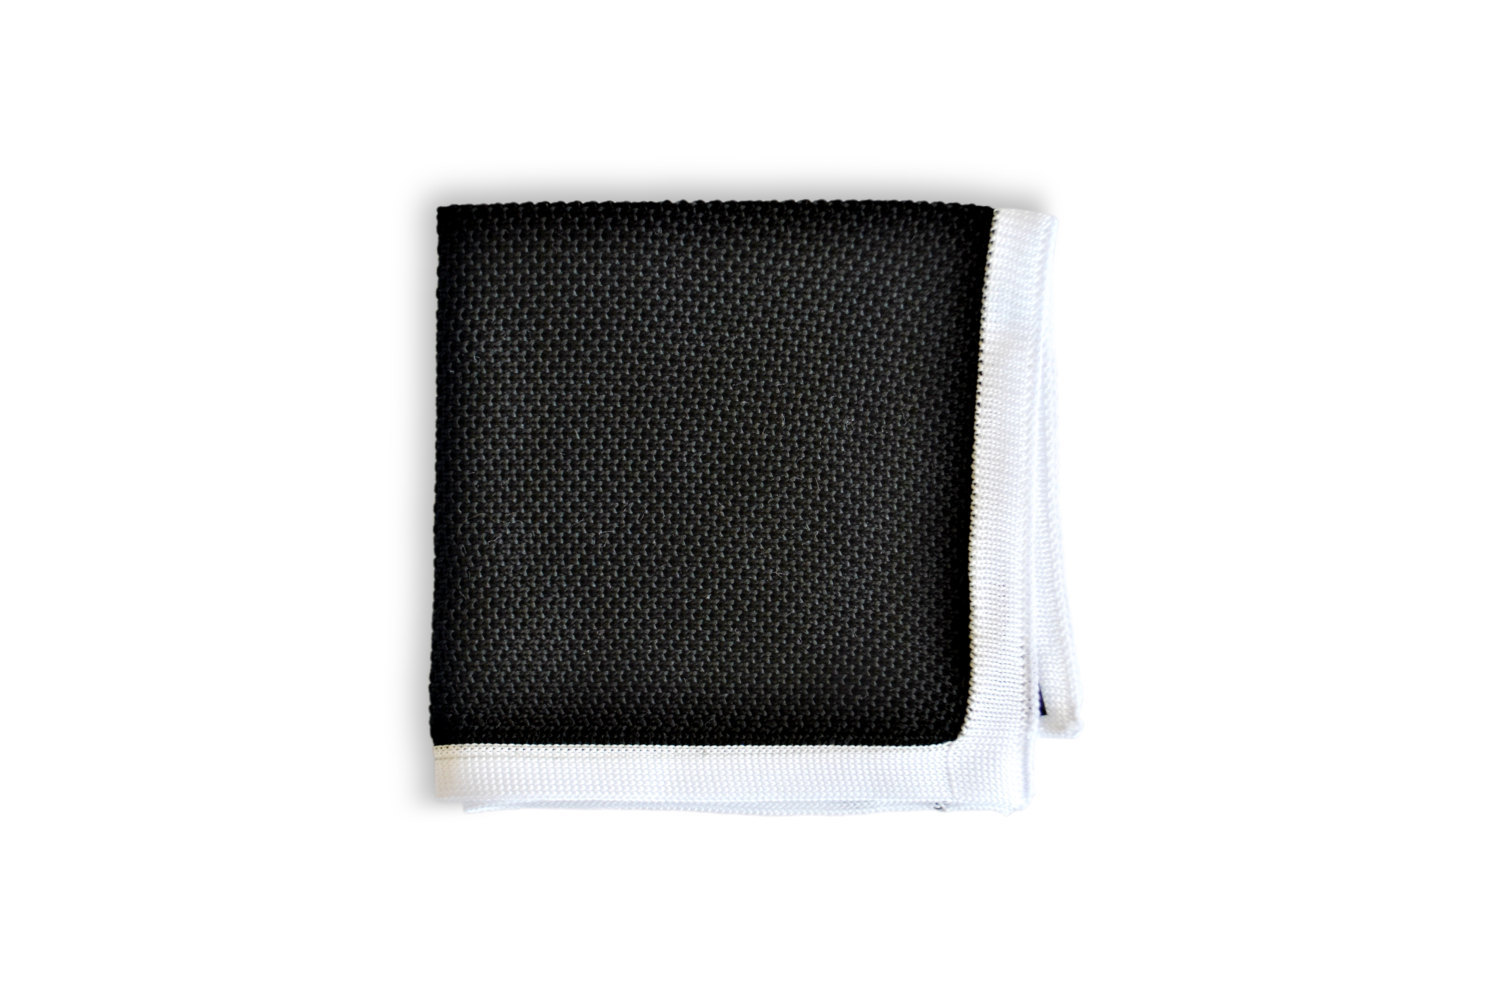 Frederick Thomas knitted Black with White Edging pocket square with white edging